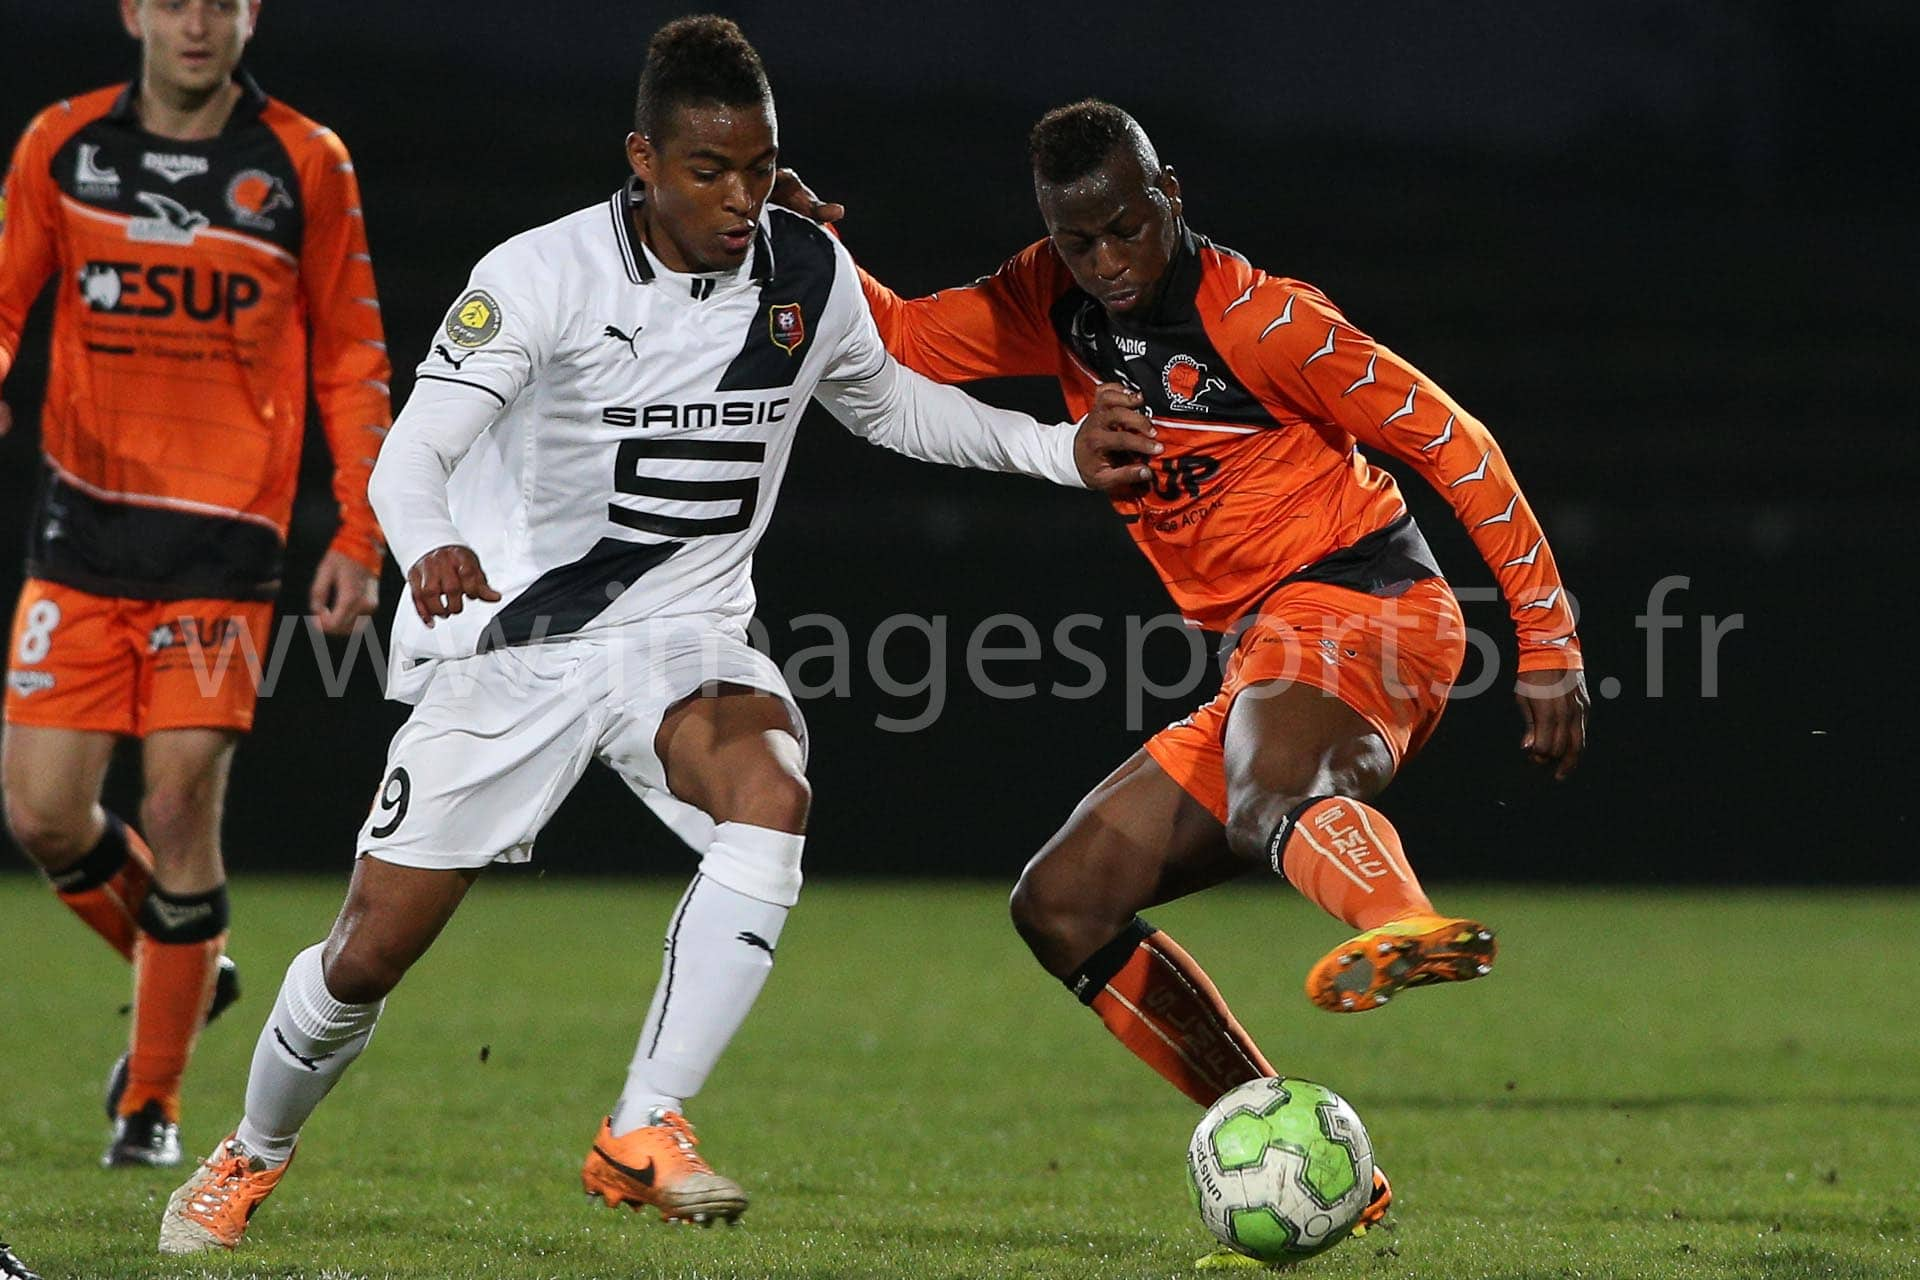 NG-CFA2-1314-J19-Laval-Rennes_18